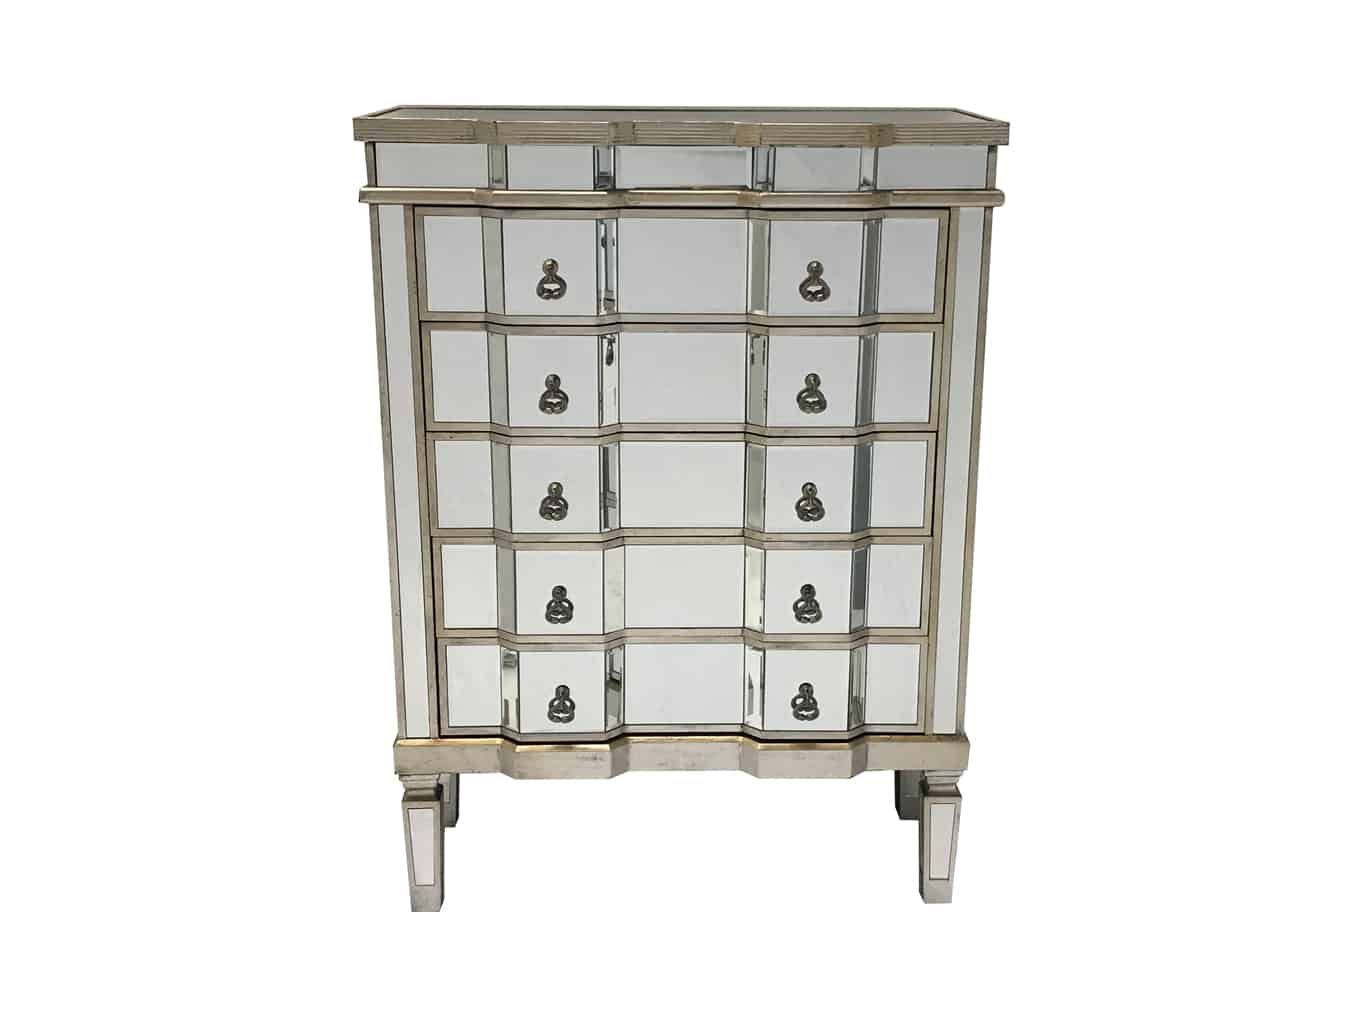 Charleston mirrored chest of 5 drawers, wood and mirror, silver finish